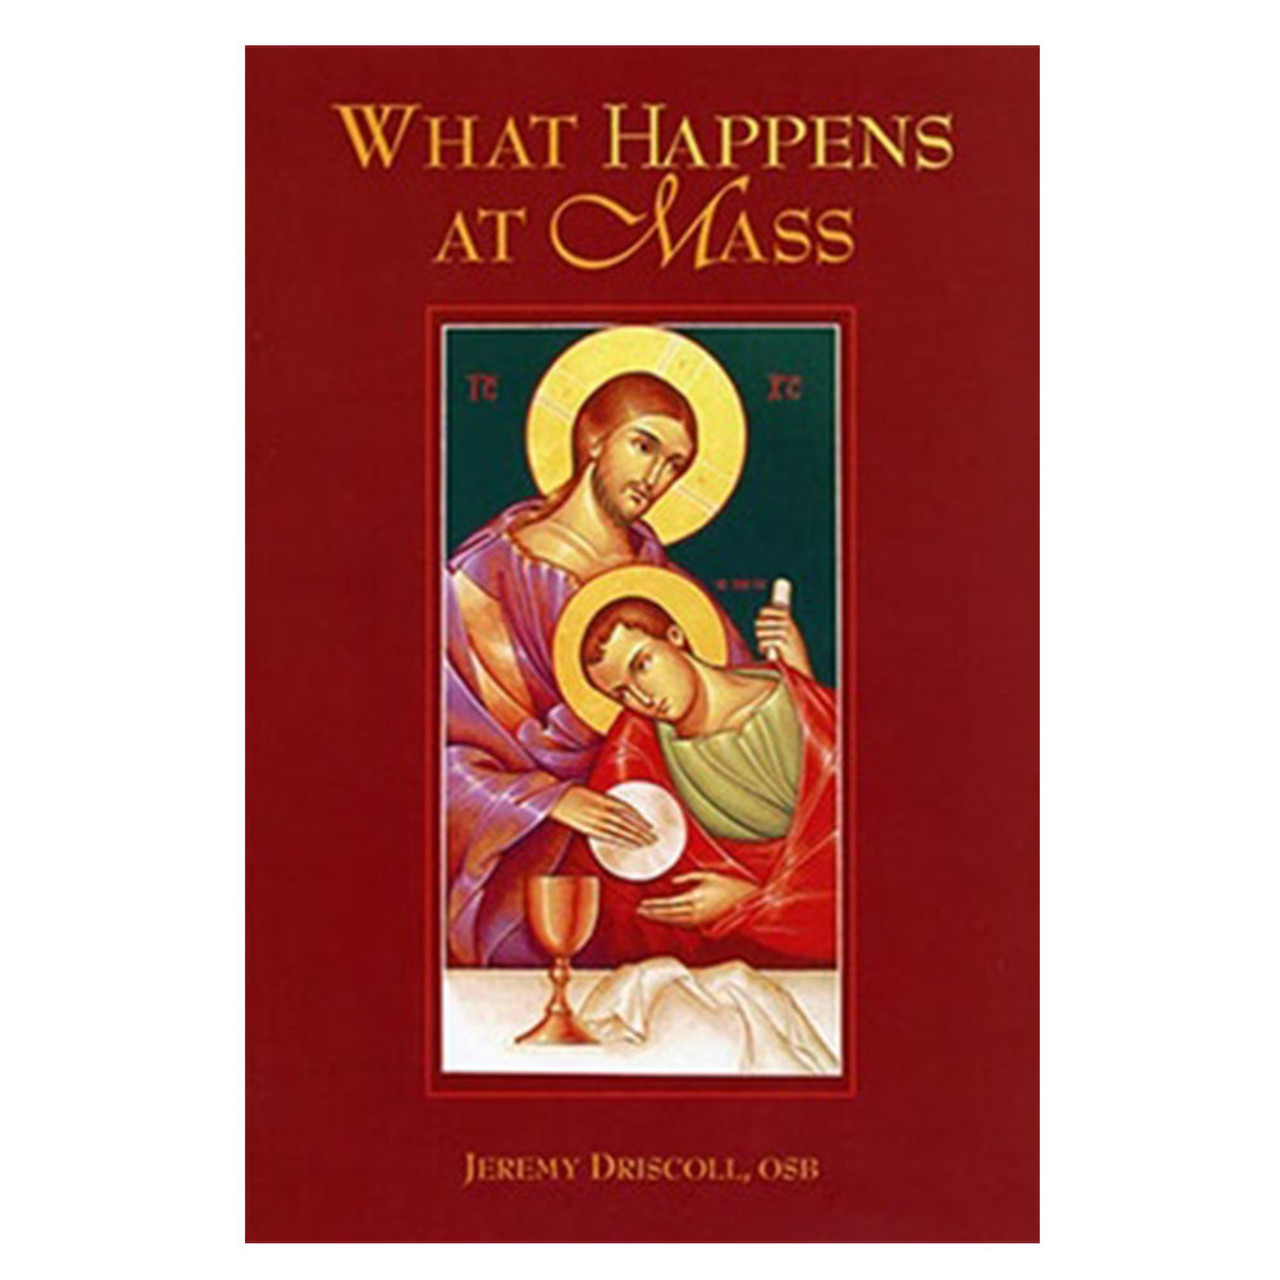 What Happens at Mass by Jeremy Driscoll, OSB